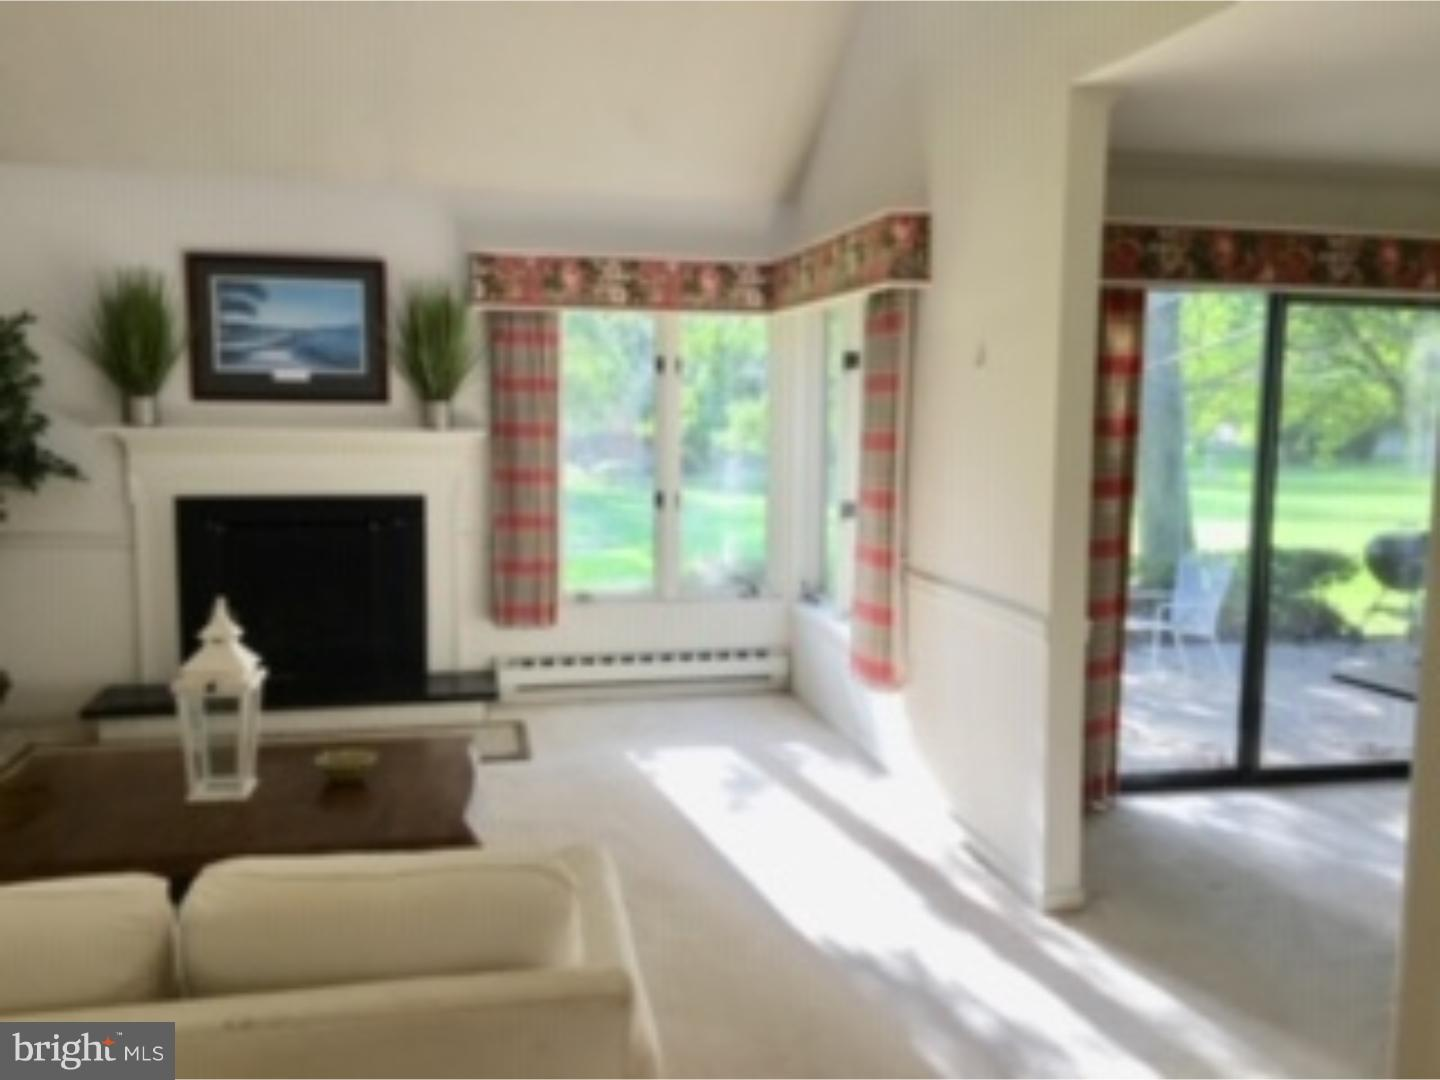 212 Chandler Drive West Chester, PA 19380